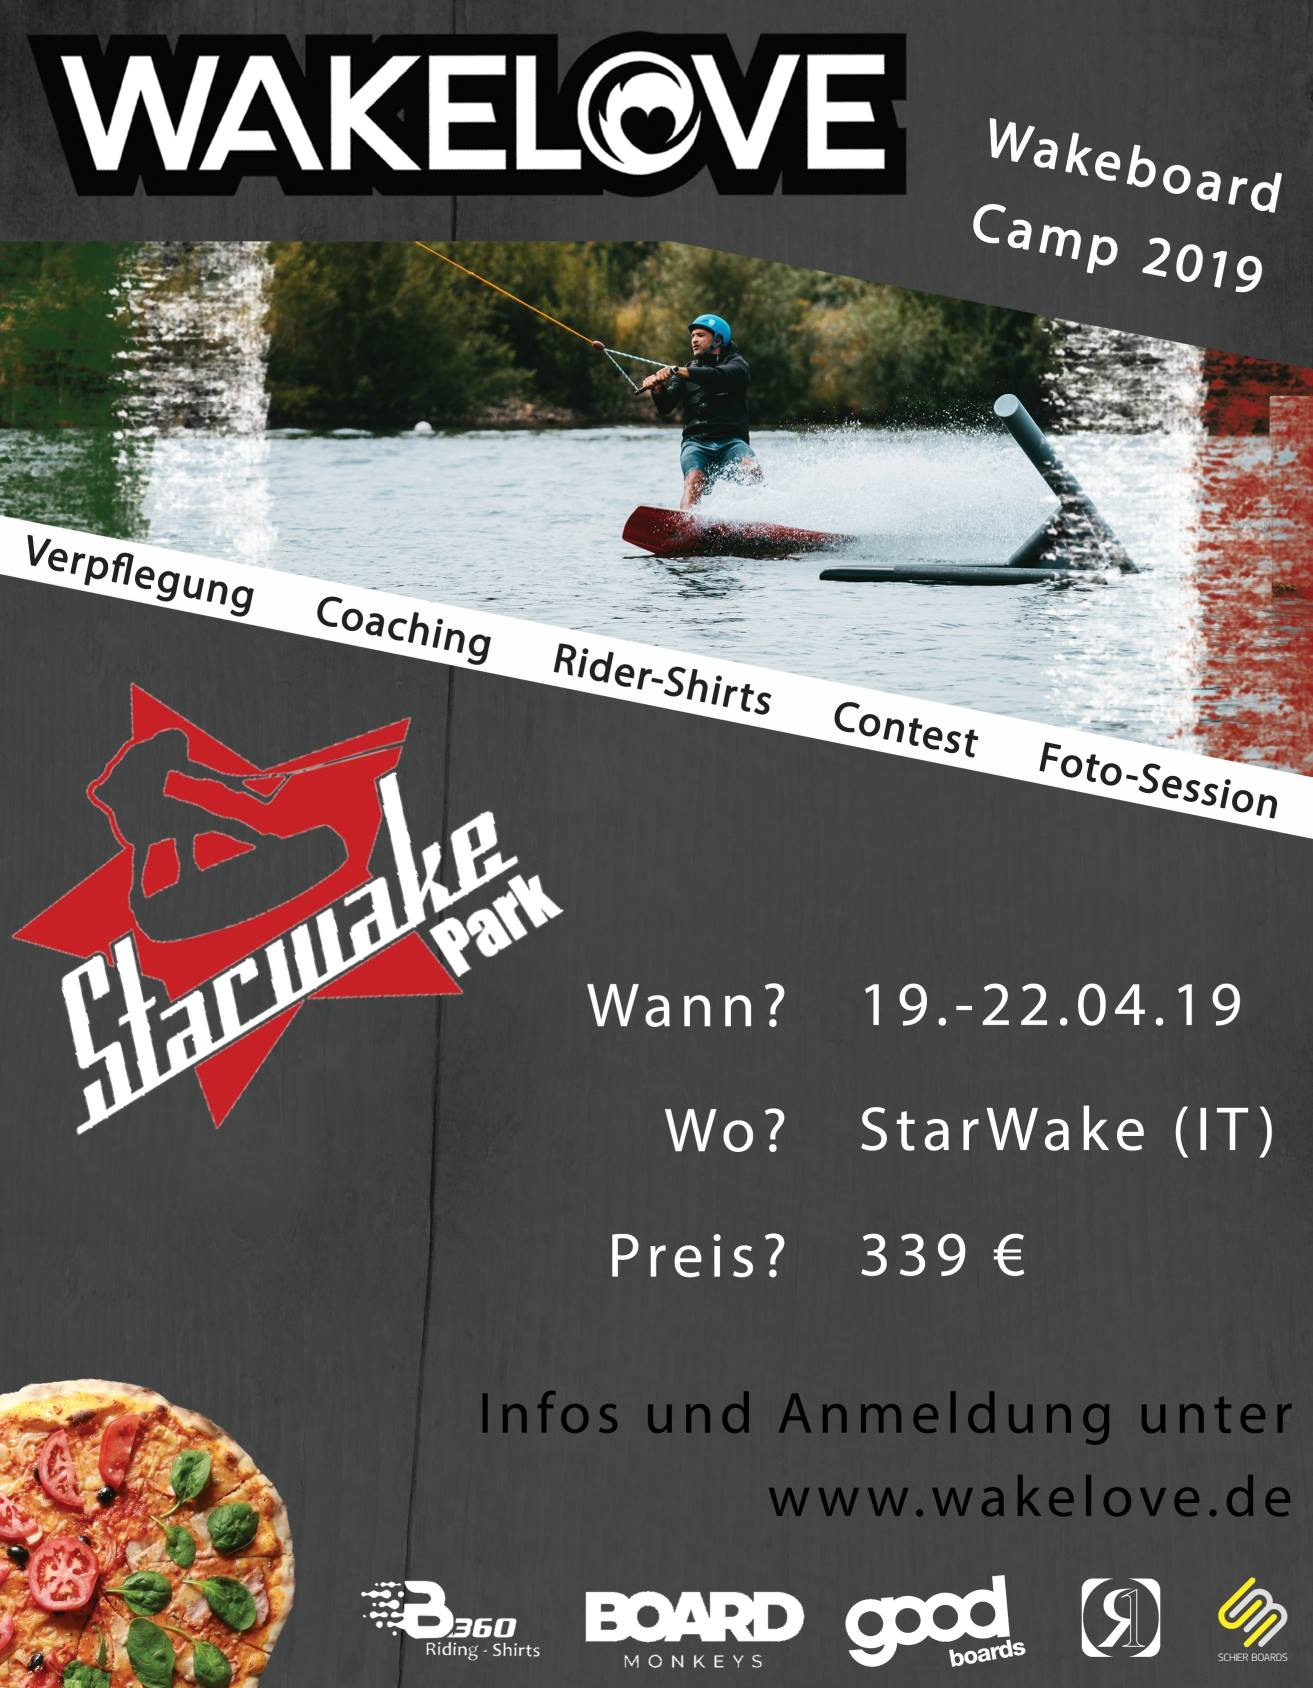 Wakelove - Camp in Italien